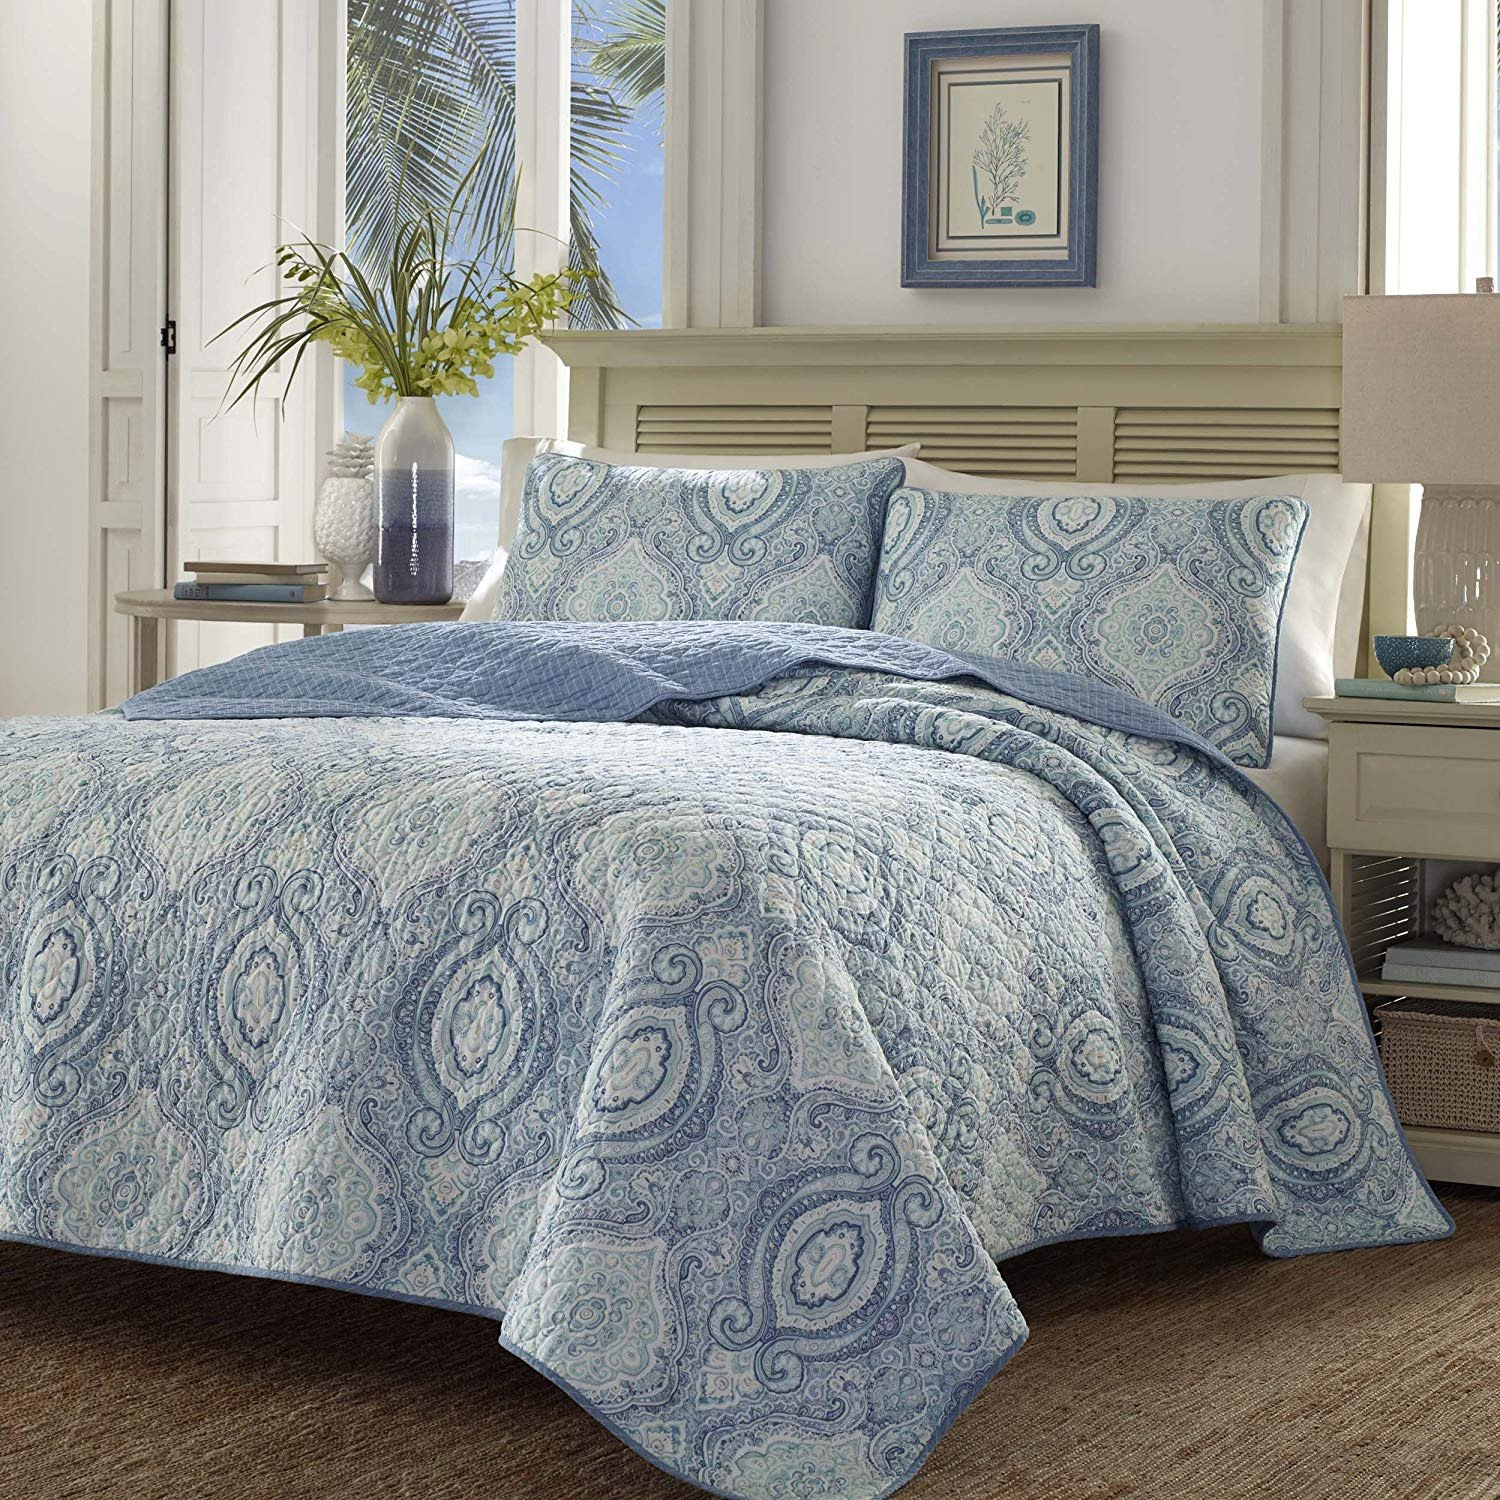 Laura ashley Bedroom Set Beautiful tommy Bahama Turtle Cove Caribbean Quilt Set Harbor Blue Twin